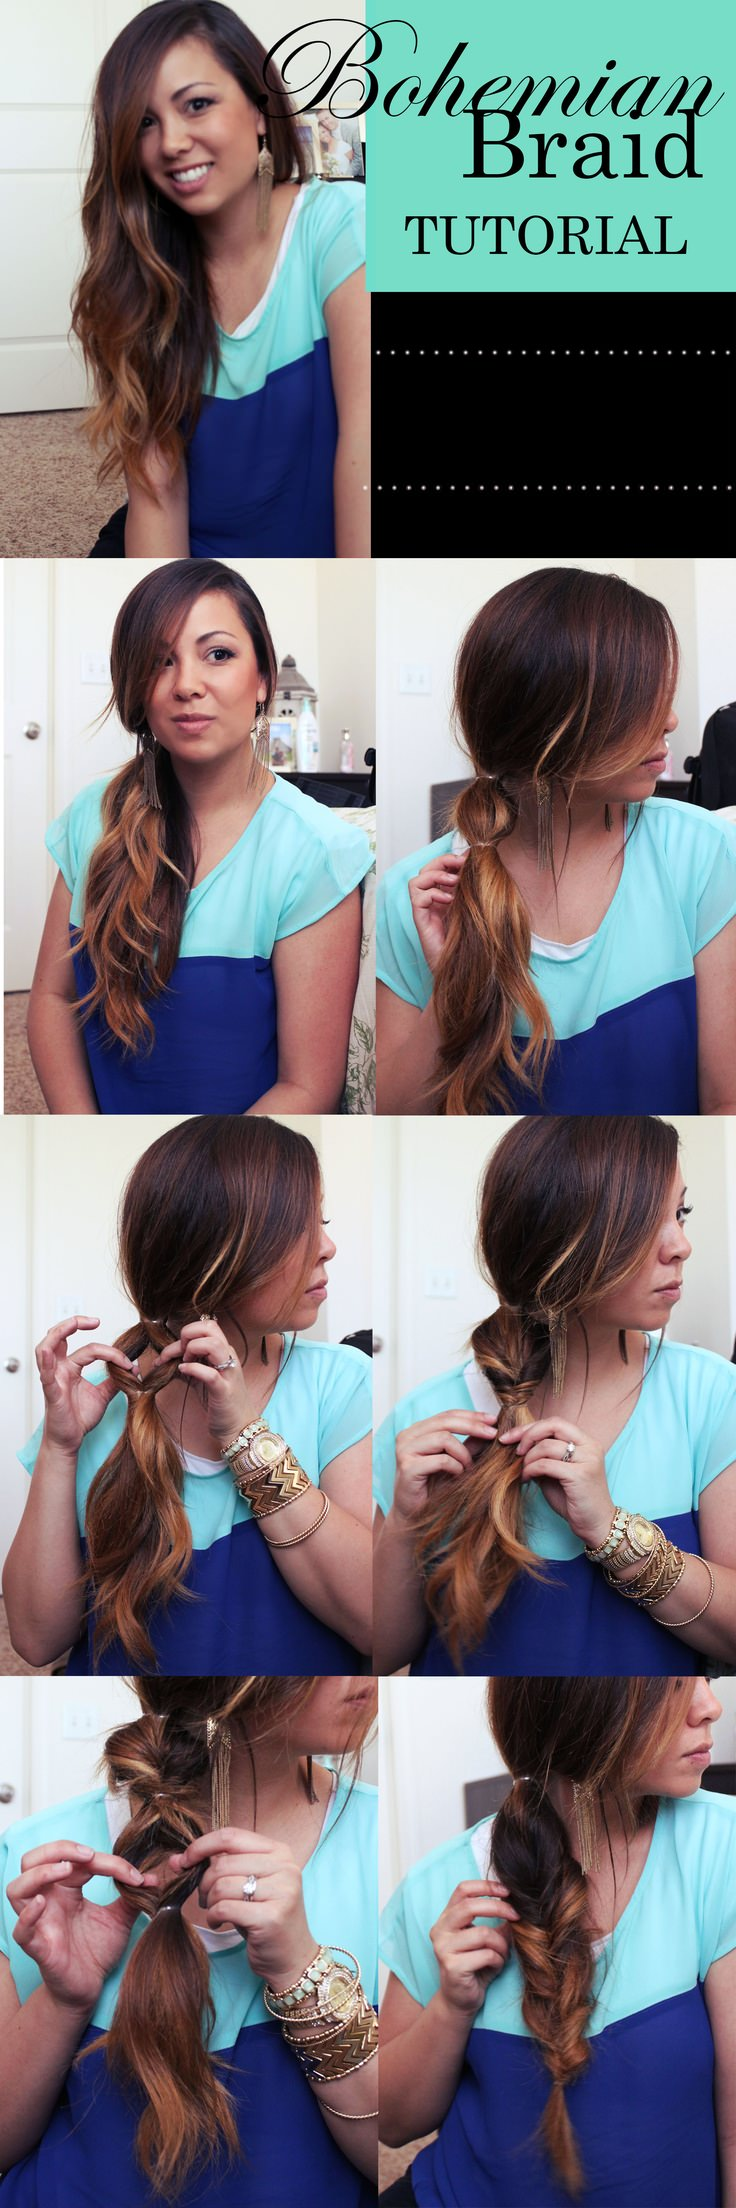 Bohemian-Braid-Tutorial